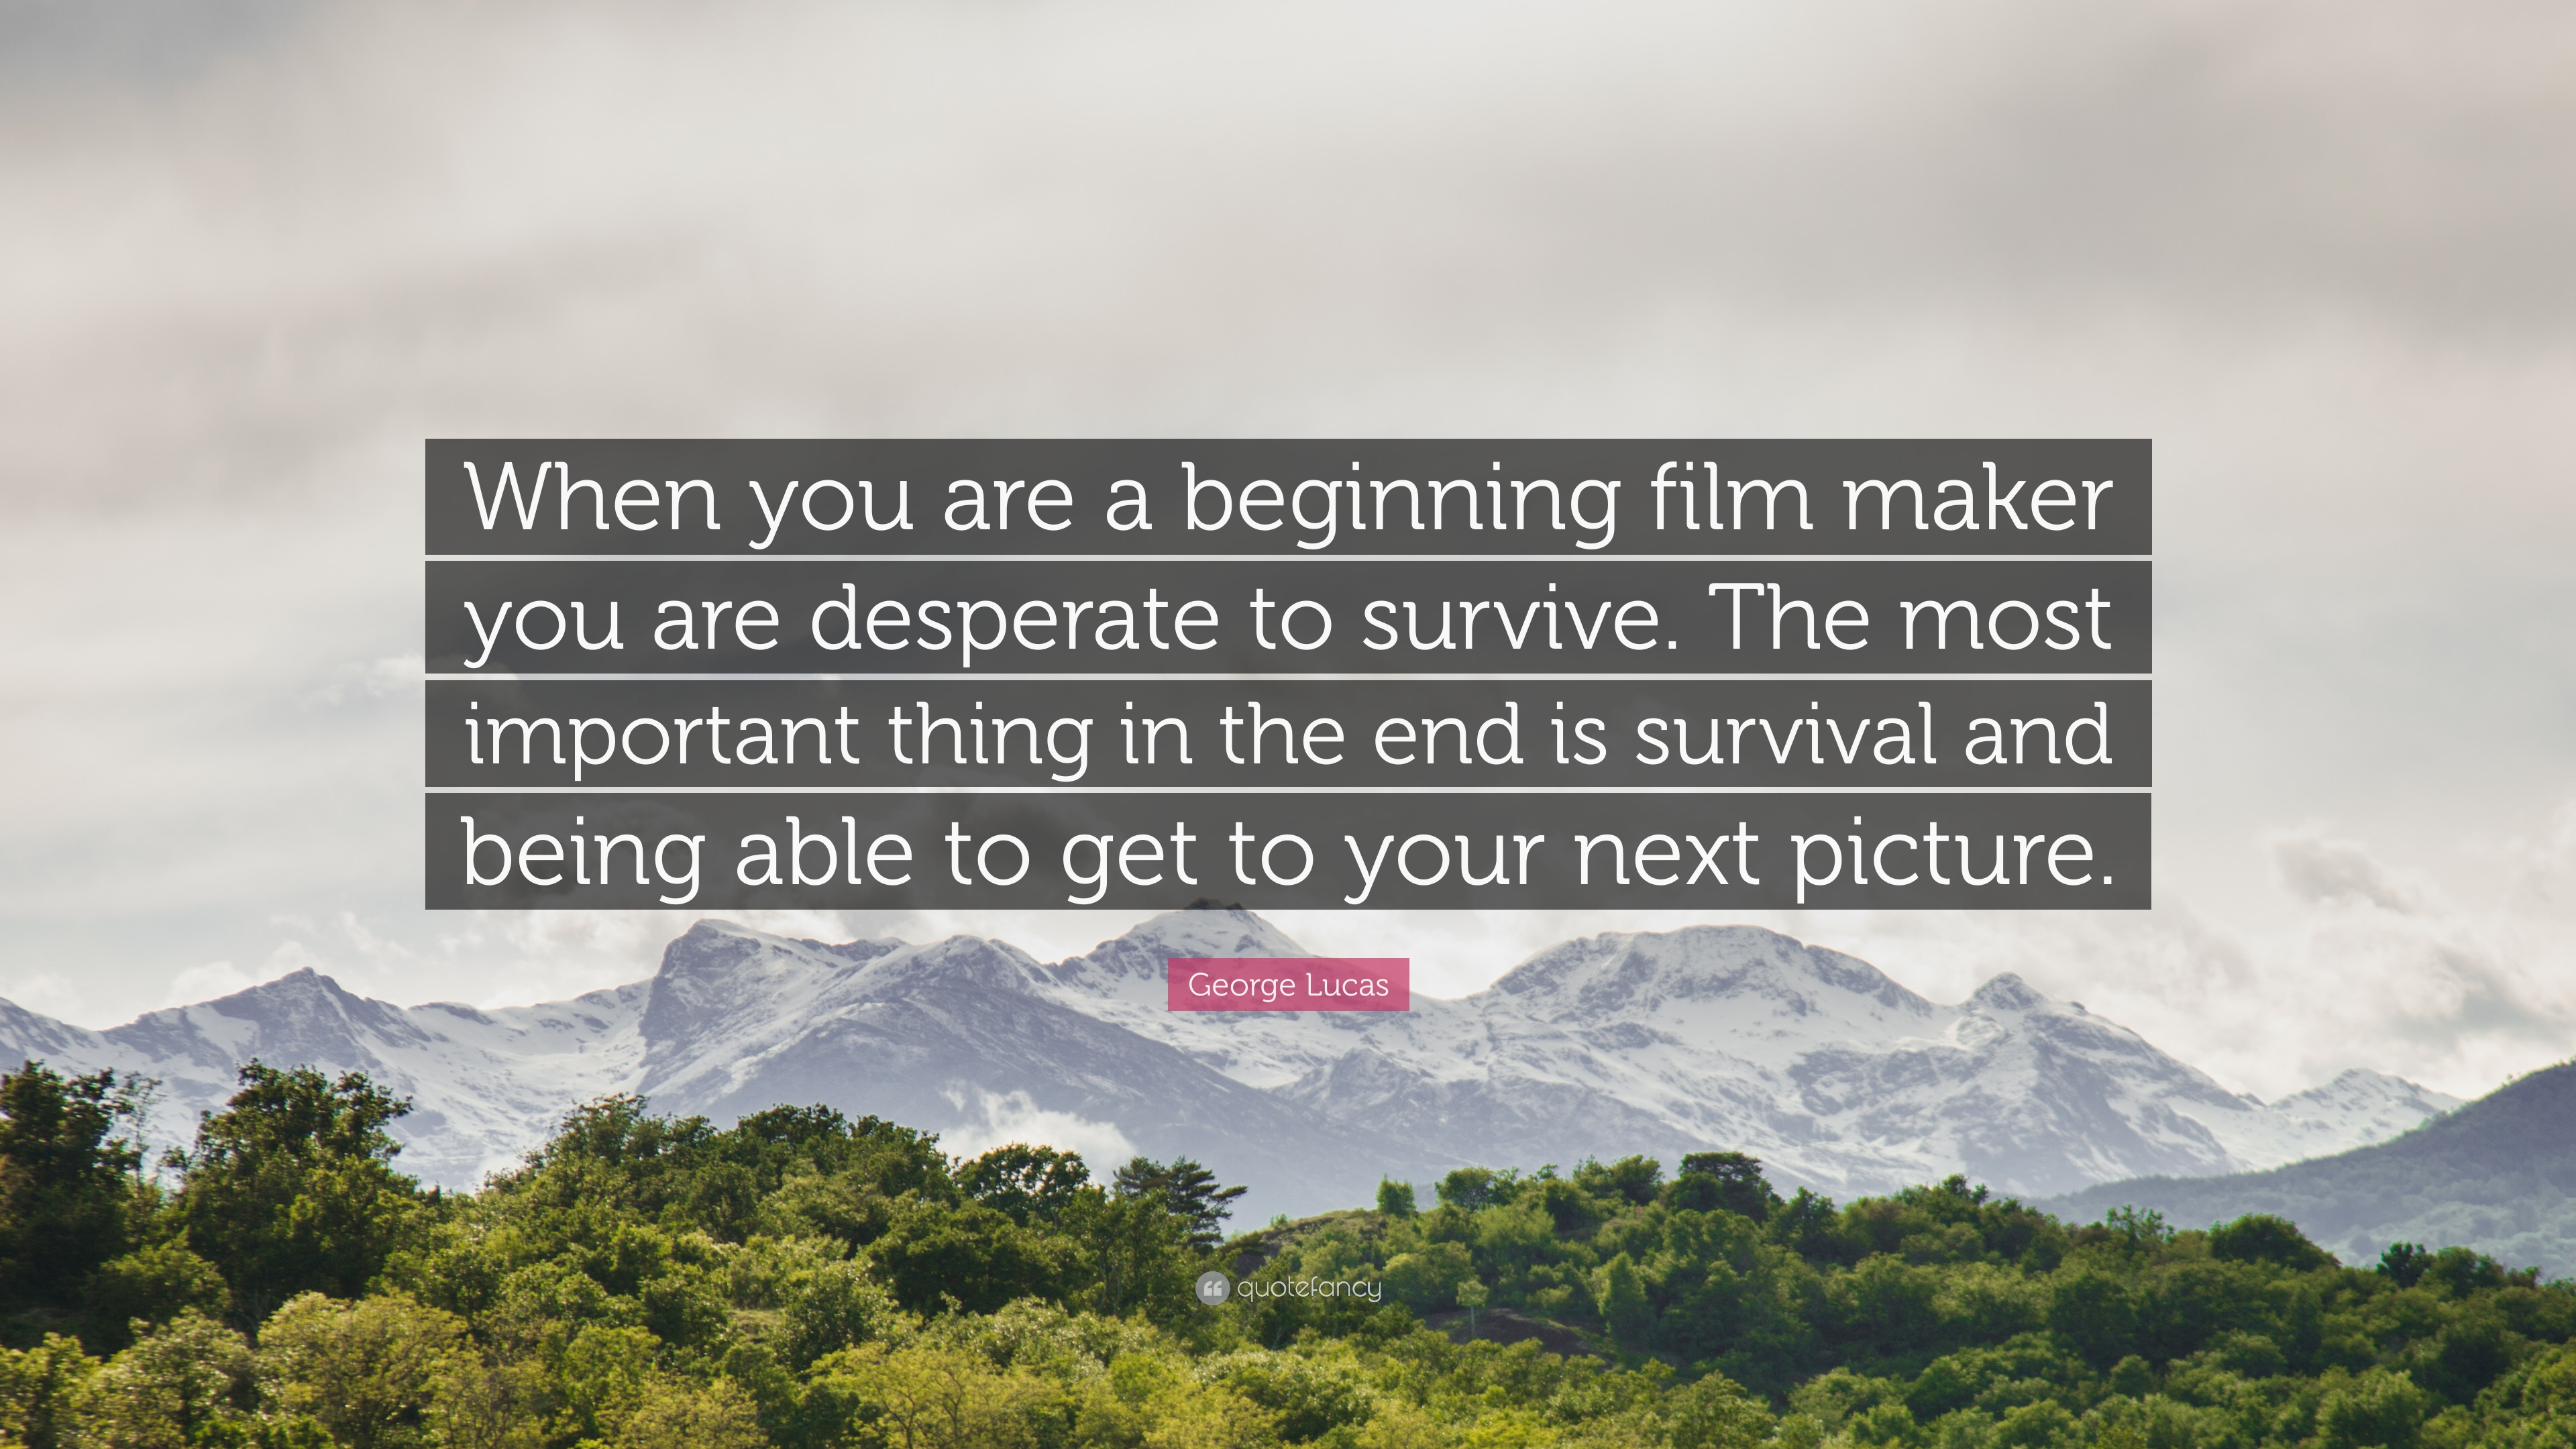 george lucas quote when you are a beginning film maker you are